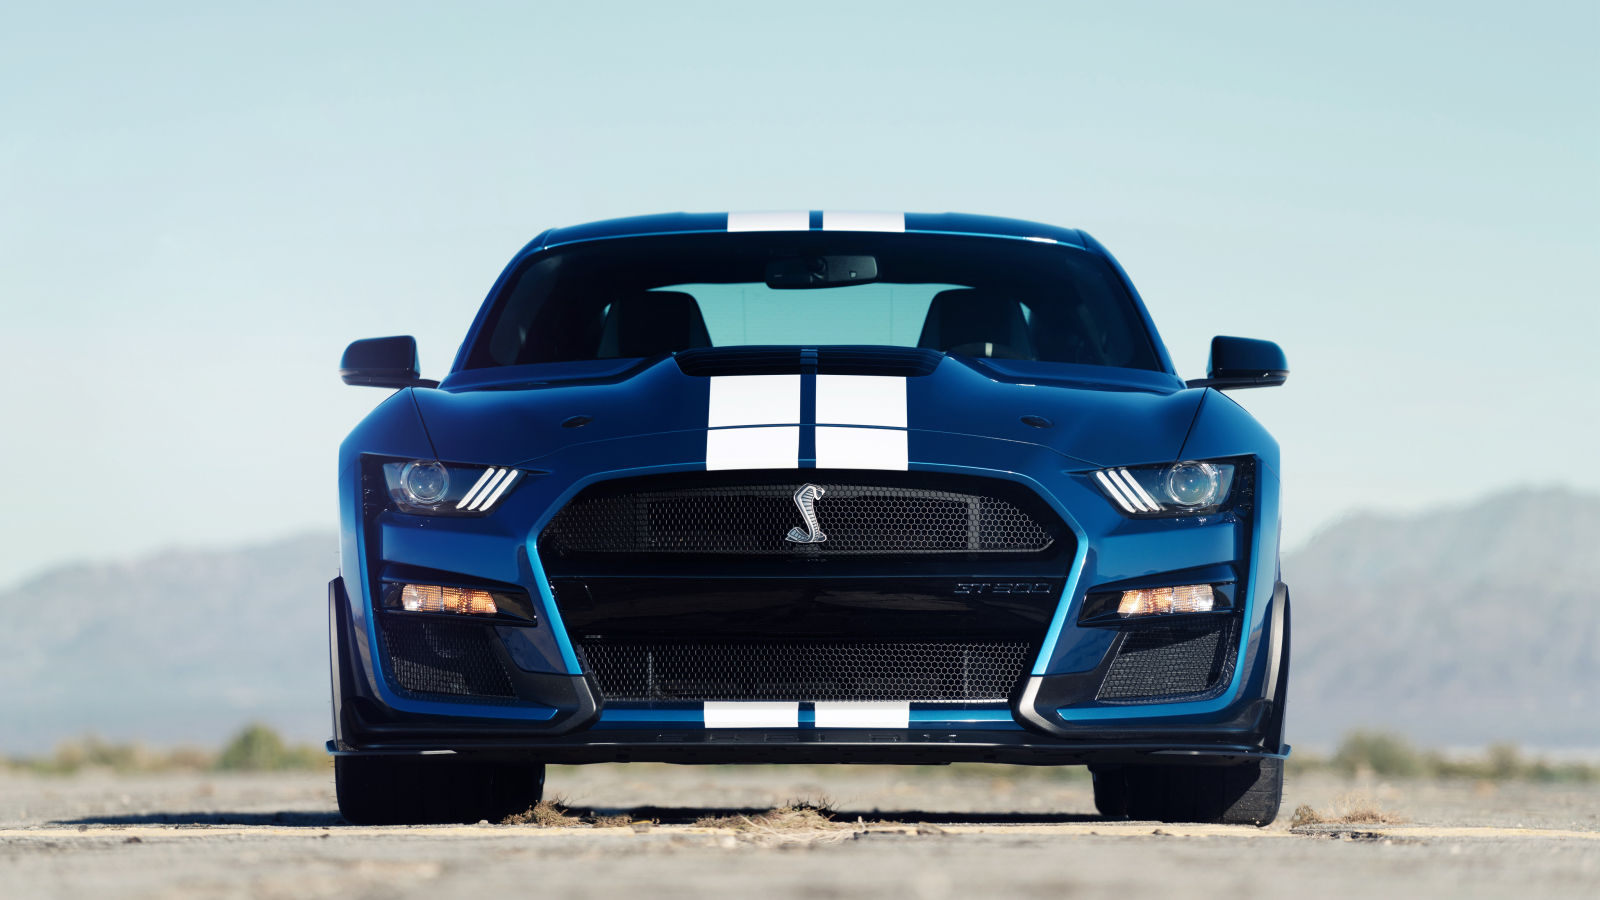 Free Download 2020 Ford Mustang Shelby Gt500 4k Wallpaper Hd Car Wallpapers 4096x2304 For Your Desktop Mobile Tablet Explore 34 Mustang 2020 Wallpapers Ford Mustang 2020 Wallpapers Mustang Wallpaper Mustang Wallpapers